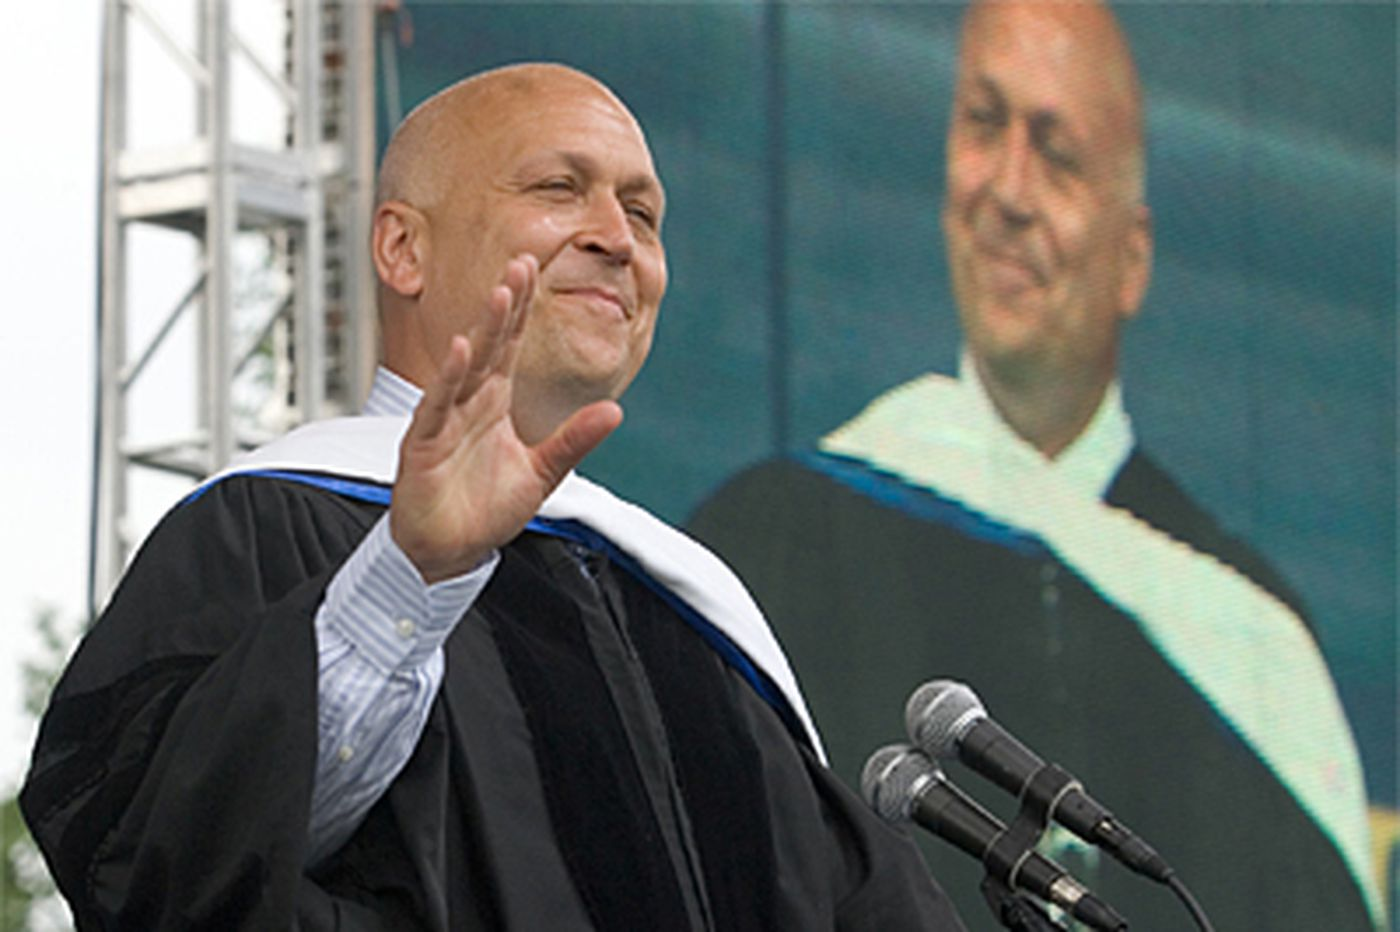 Ripken's sound advice is a commencement-day hit